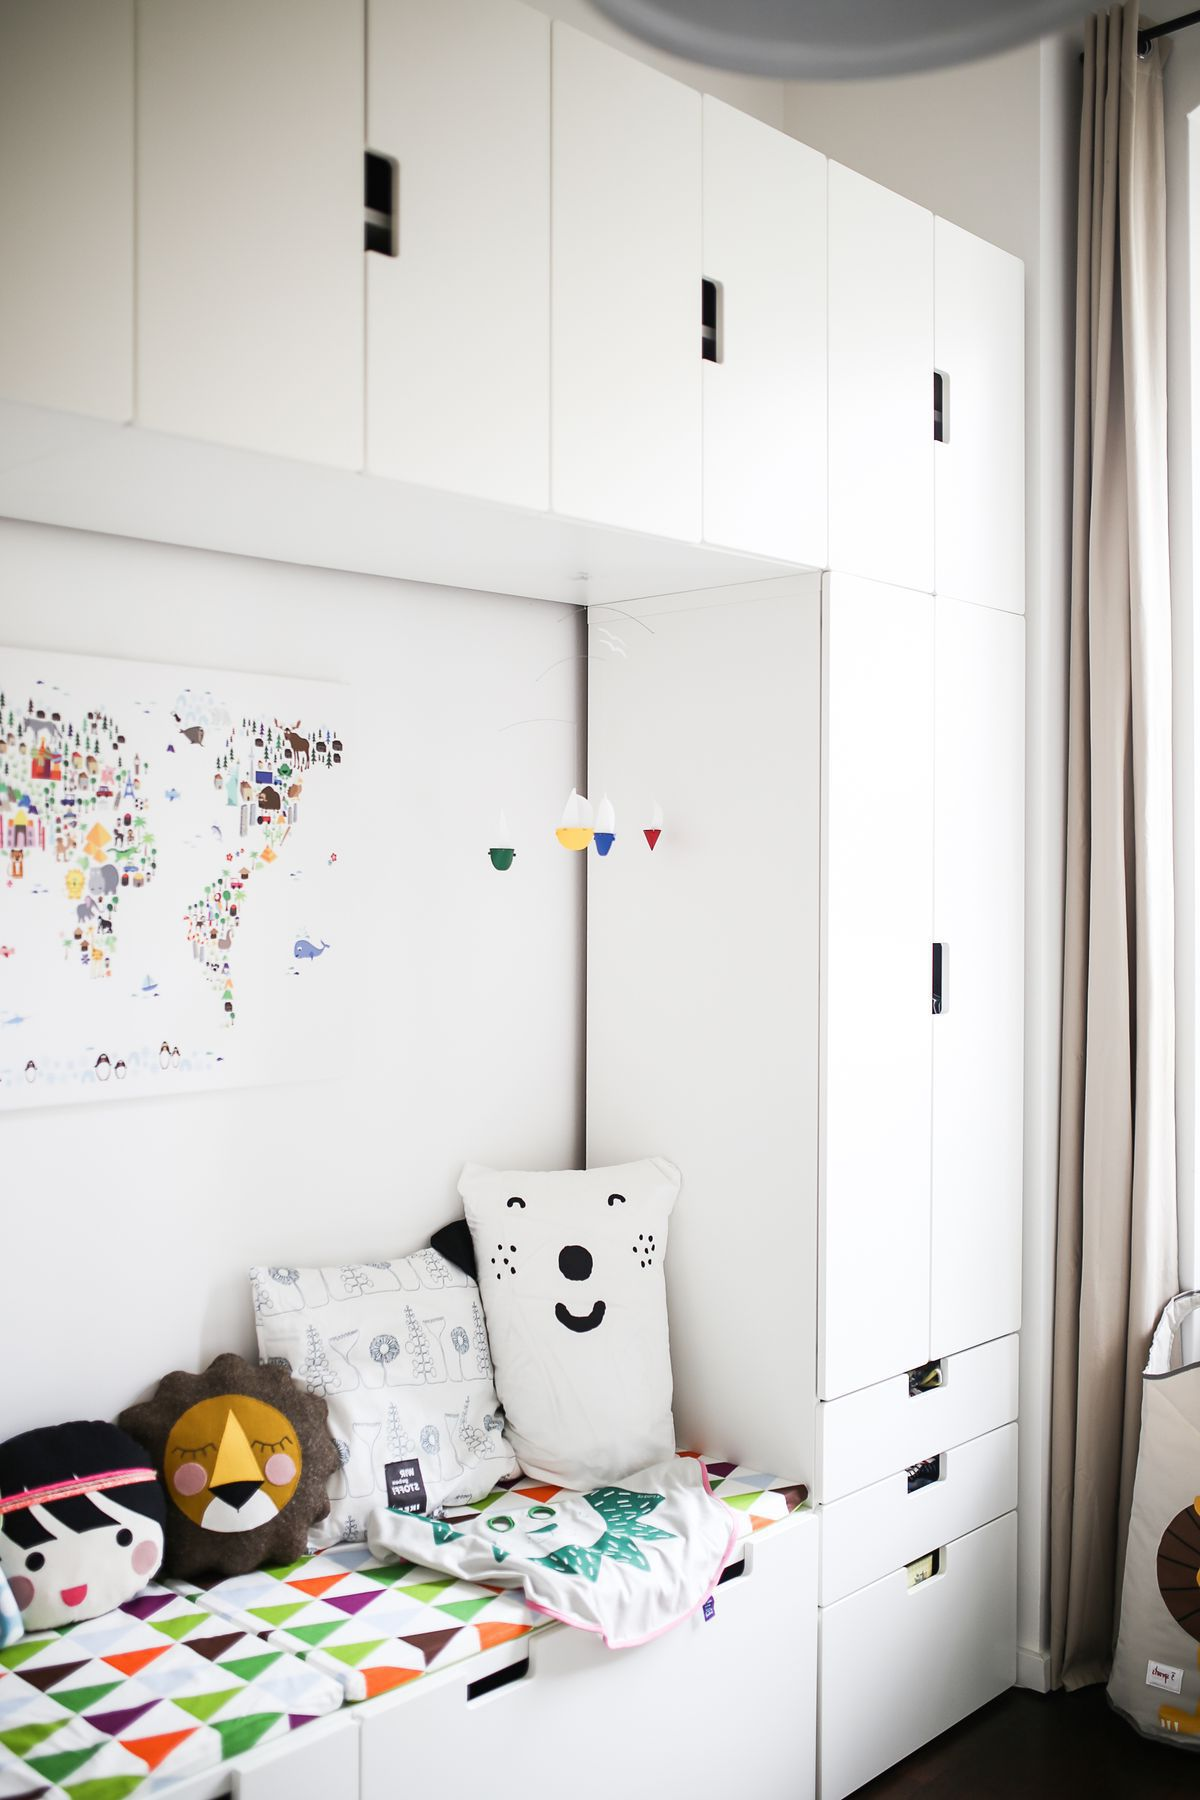 Couch and storage organization in the nursery with the help of IKEA STUVA series